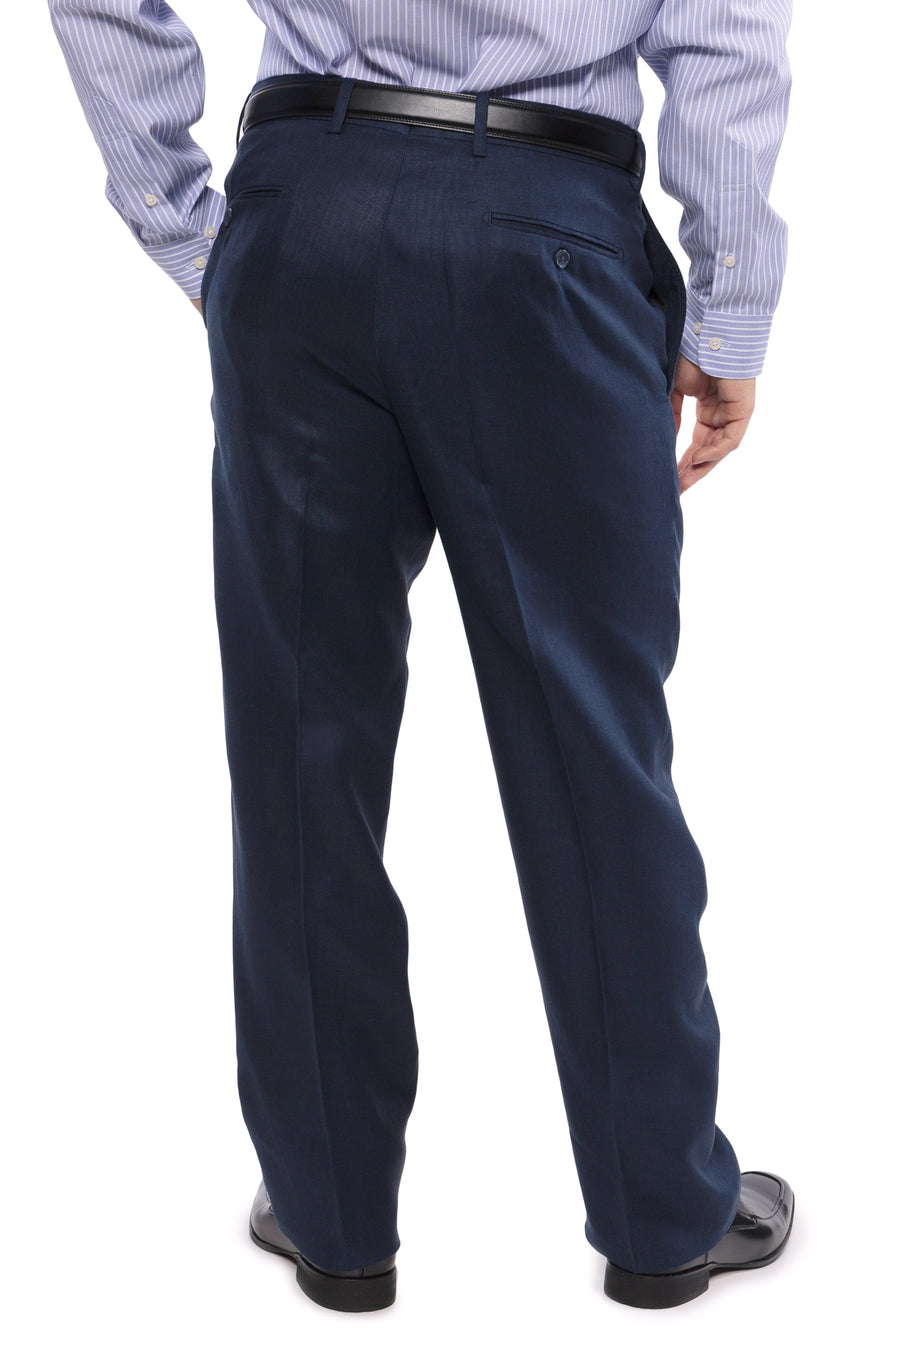 Menton - Men's Tailored Linen Dress Pants - TexereSilk